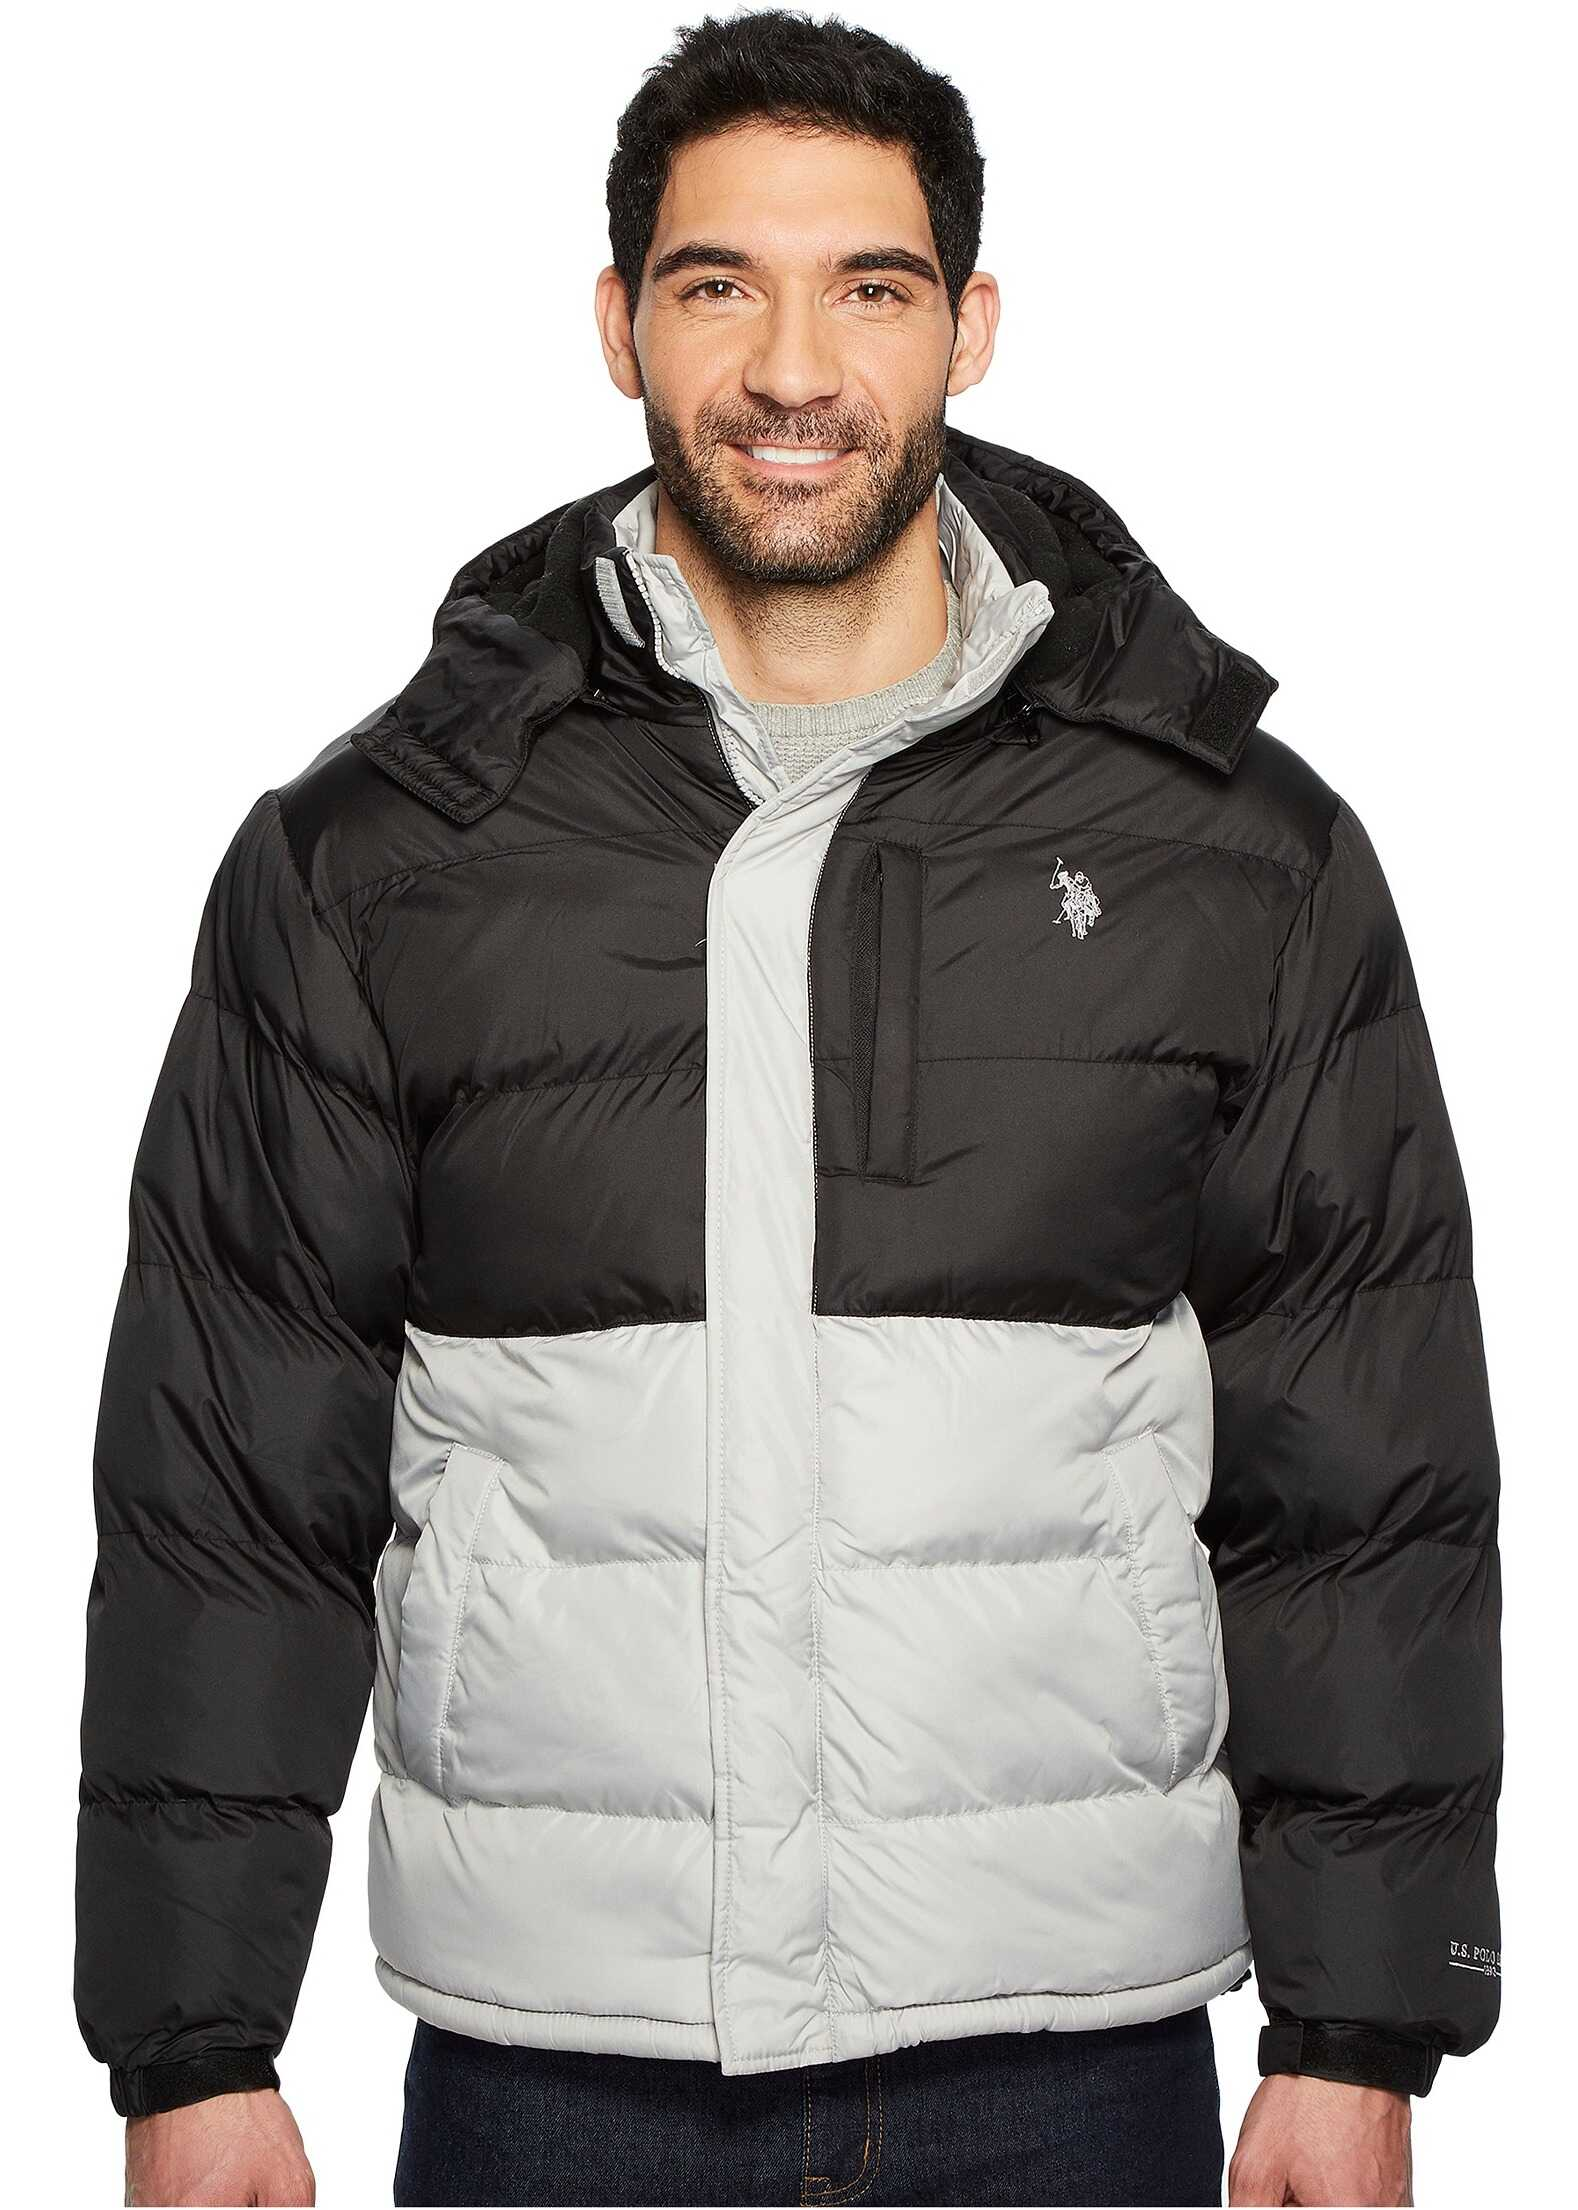 U.S. POLO ASSN. Color Block Short Bubble Jacket Limestone